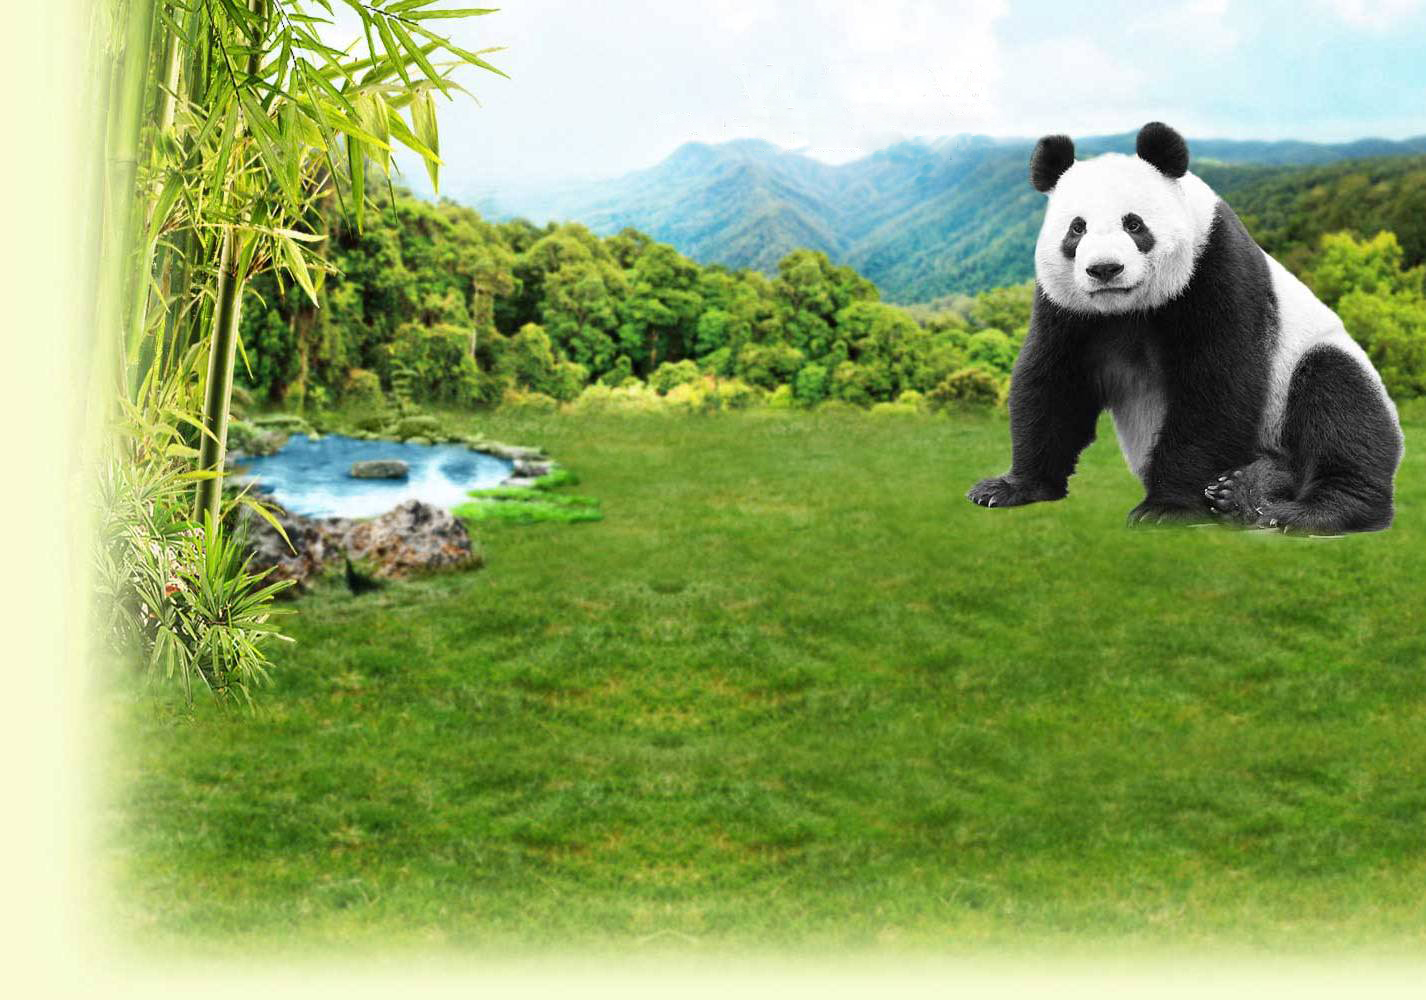 Panda TV - Follow the adventures of Kai Kai and Jia Jia in these behind-the-scenes videos!